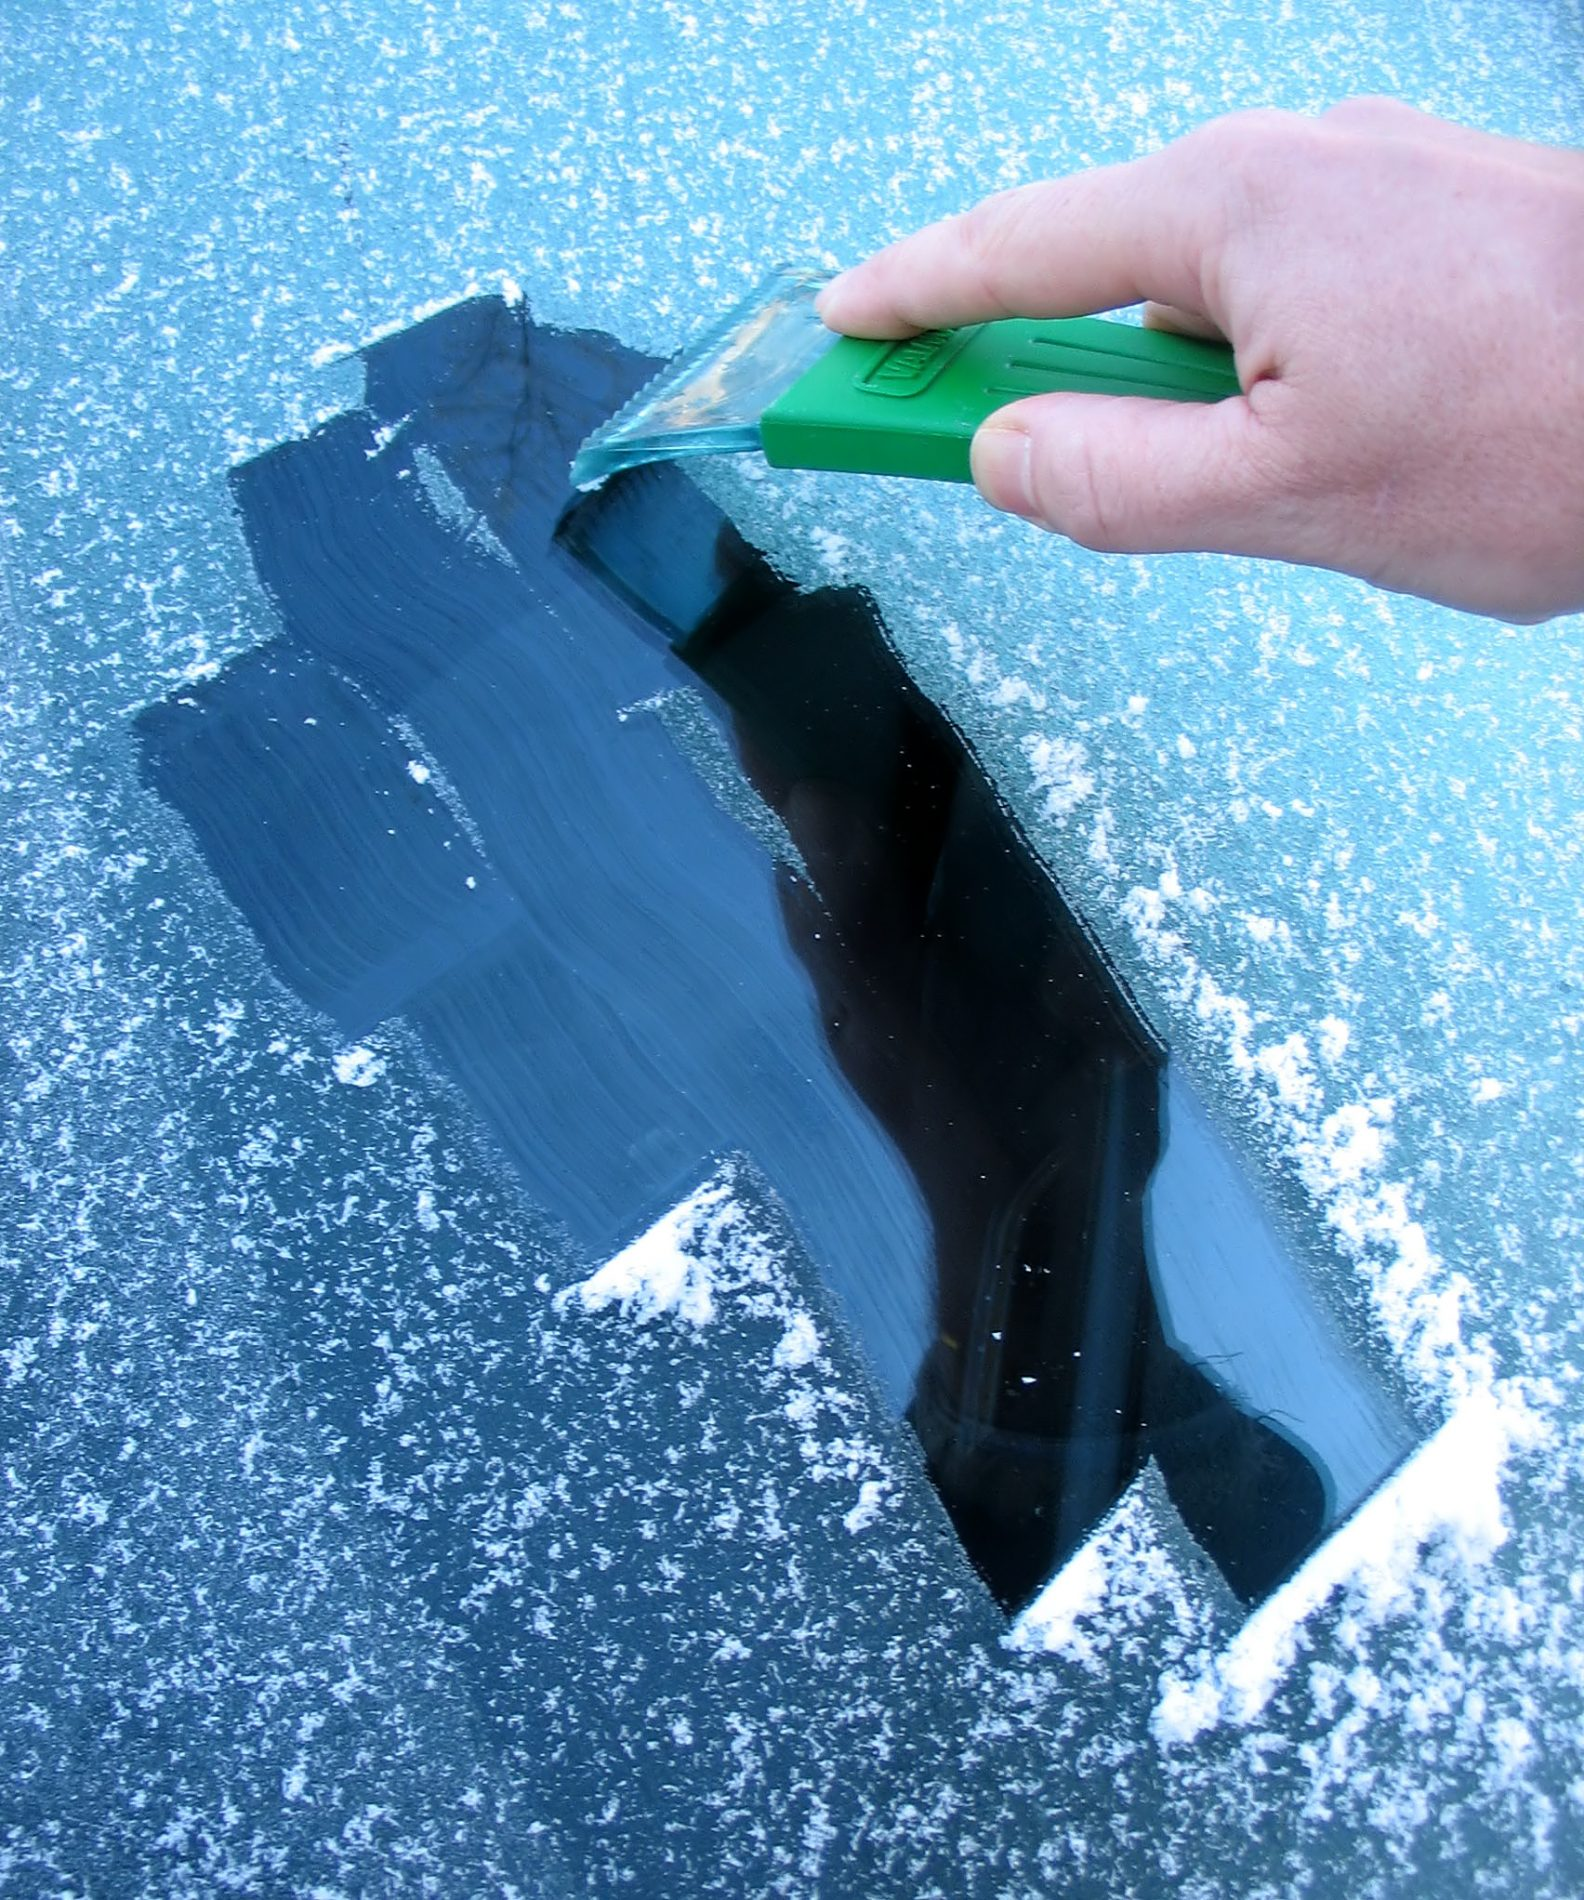 Tips For Winterizing Your Vehicle